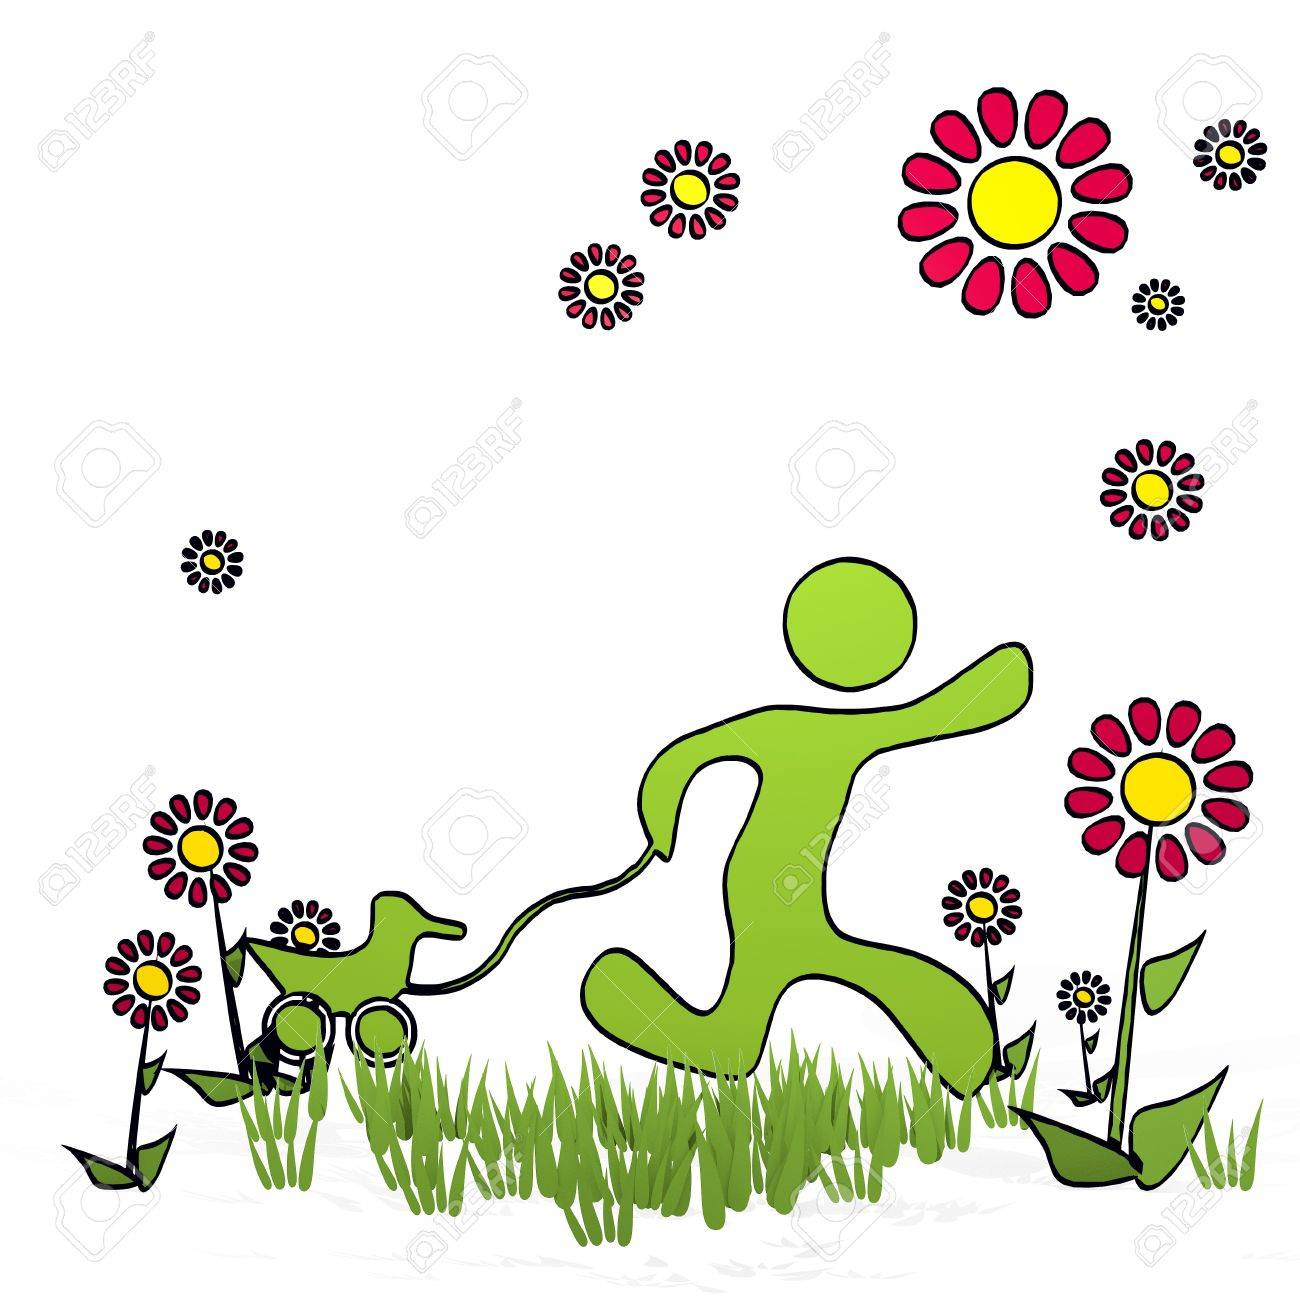 Cute spring flower - Stock Photo Spring Flower Hand Drawn Sketch Of Play With Cute Flowers On White Background